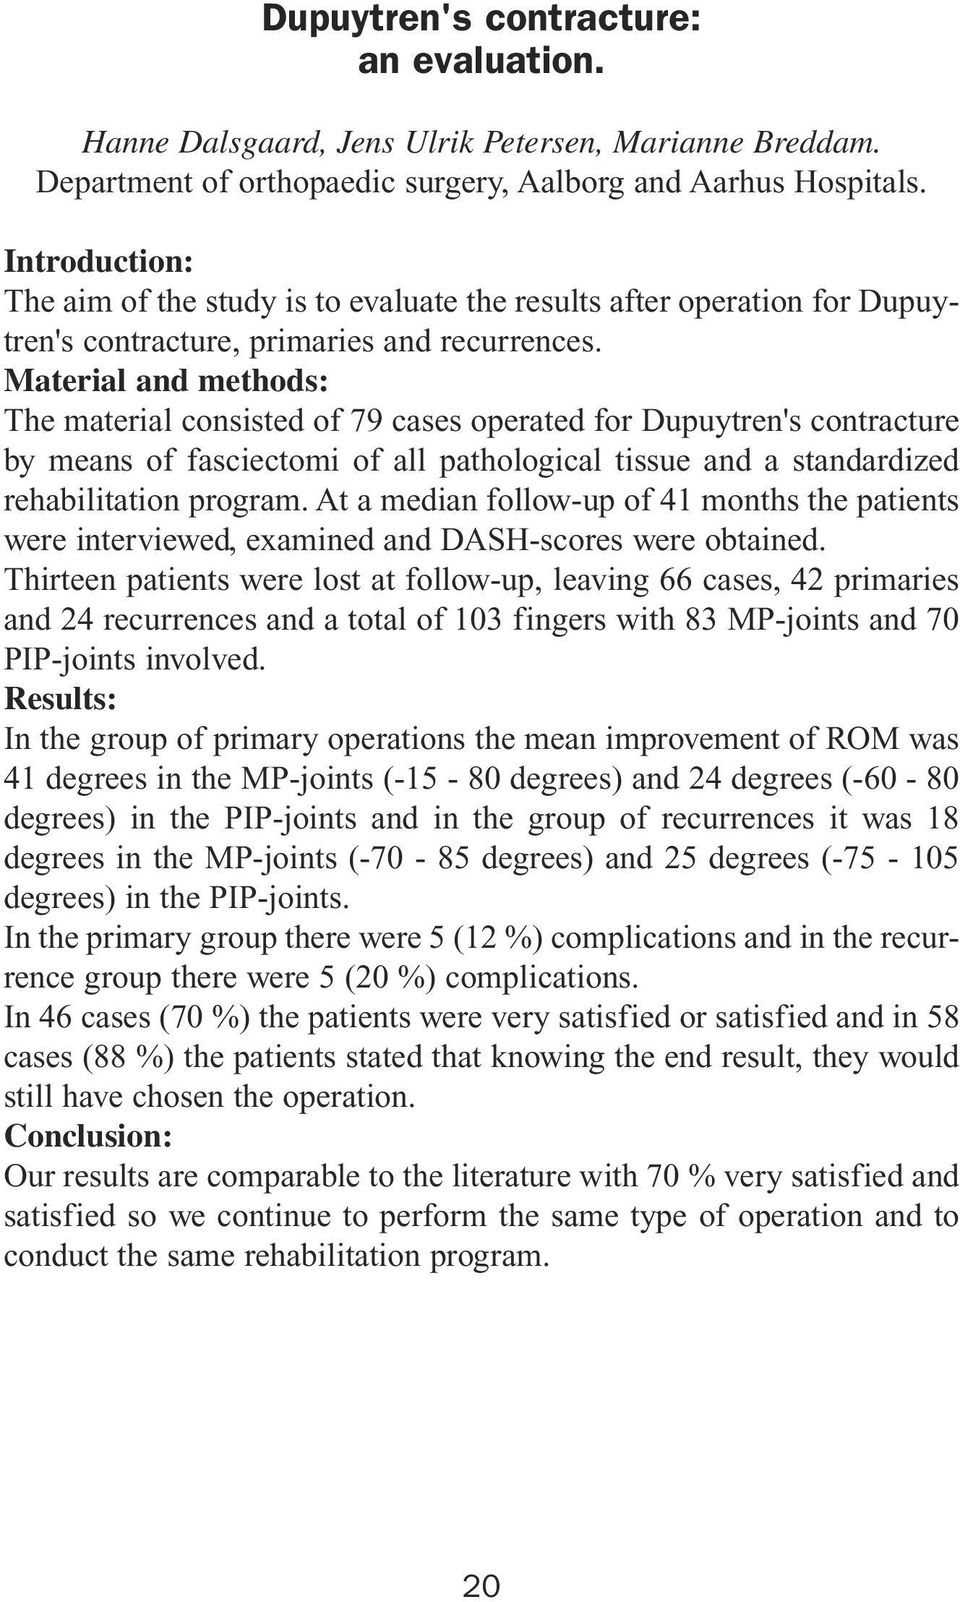 Material and methods: The material consisted of 79 cases operated for Dupuytren's contracture by means of fasciectomi of all pathological tissue and a standardized rehabilitation program.